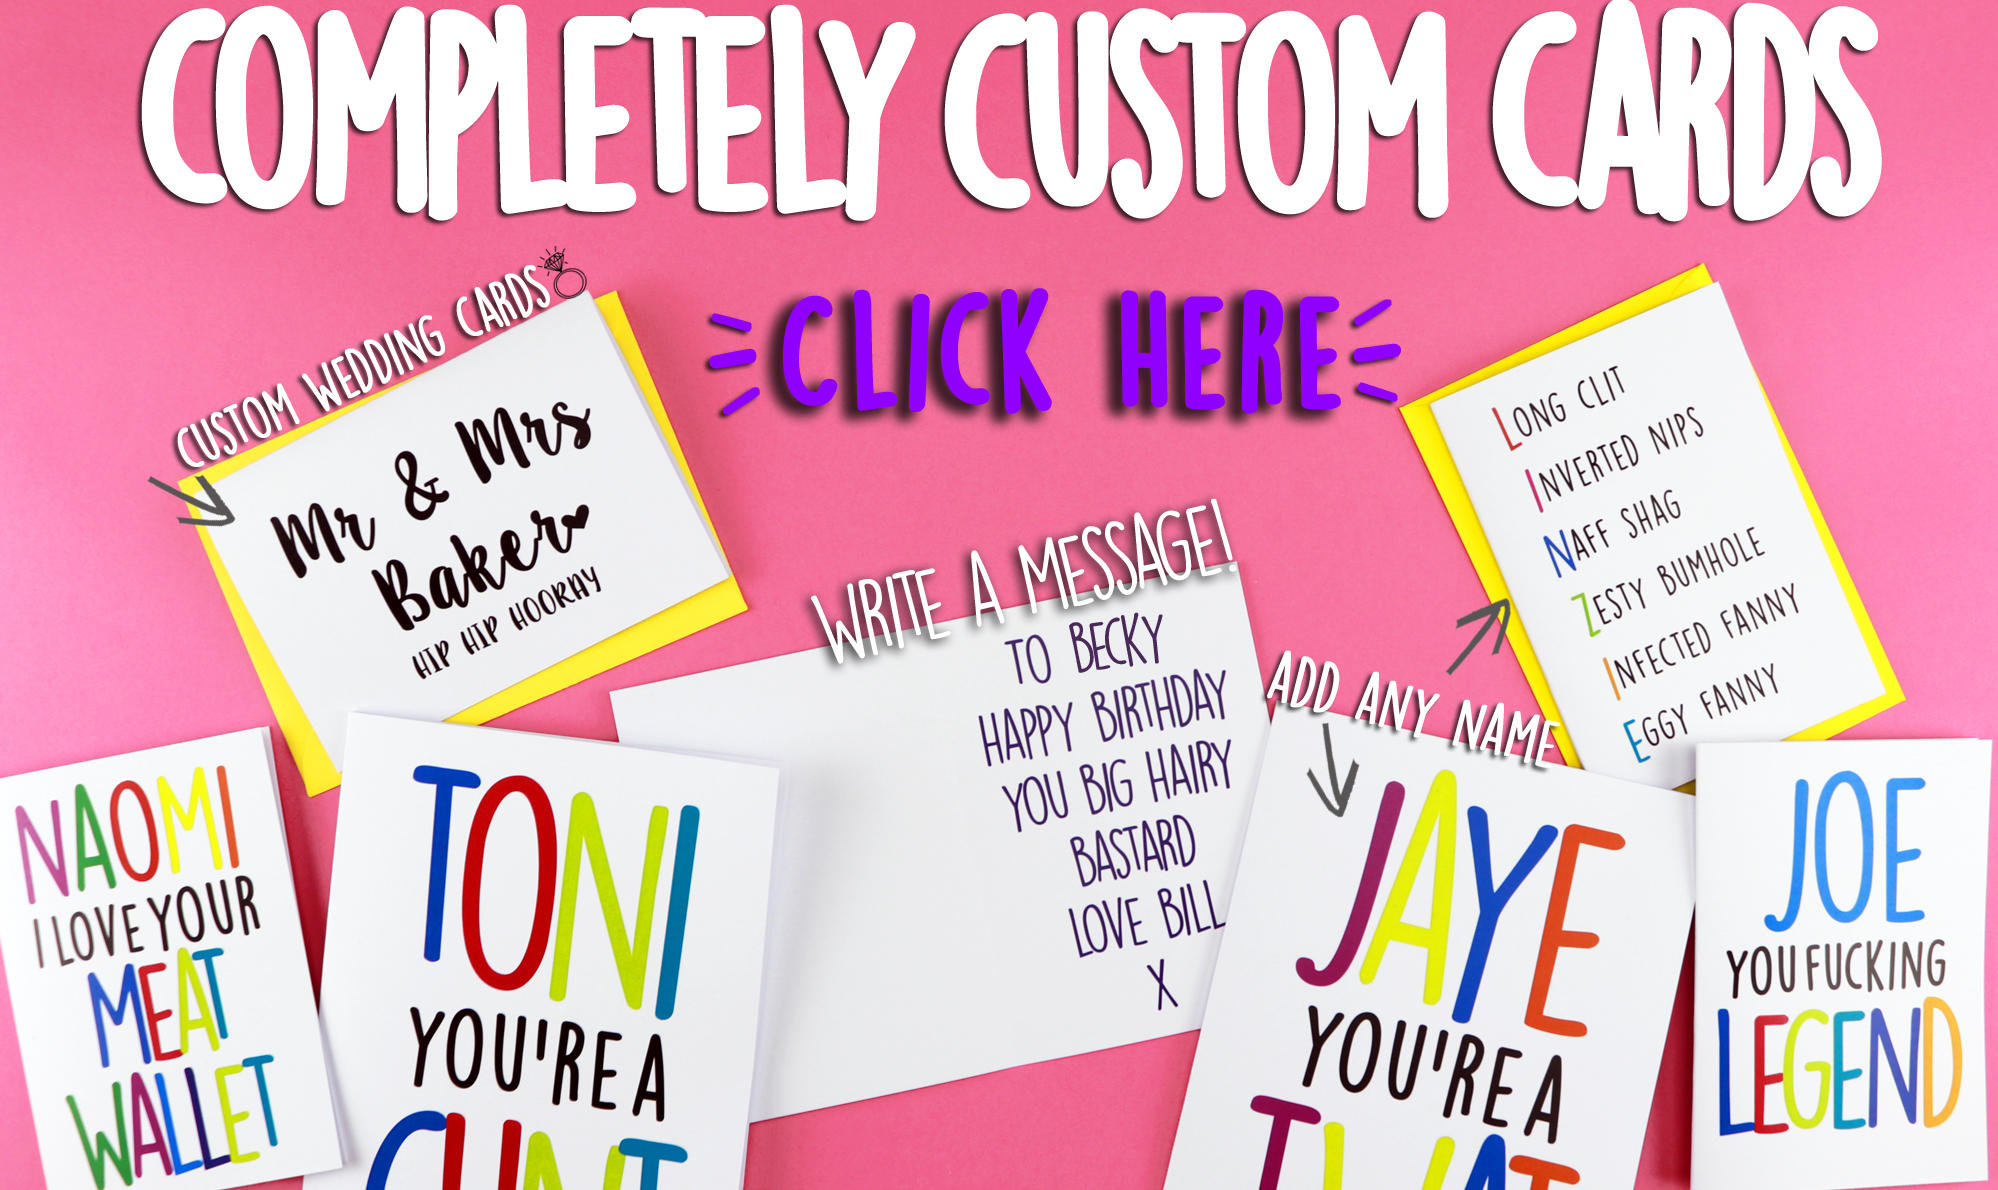 Banter cards rude cards funny birthday cards buy funny cards online m4hsunfo